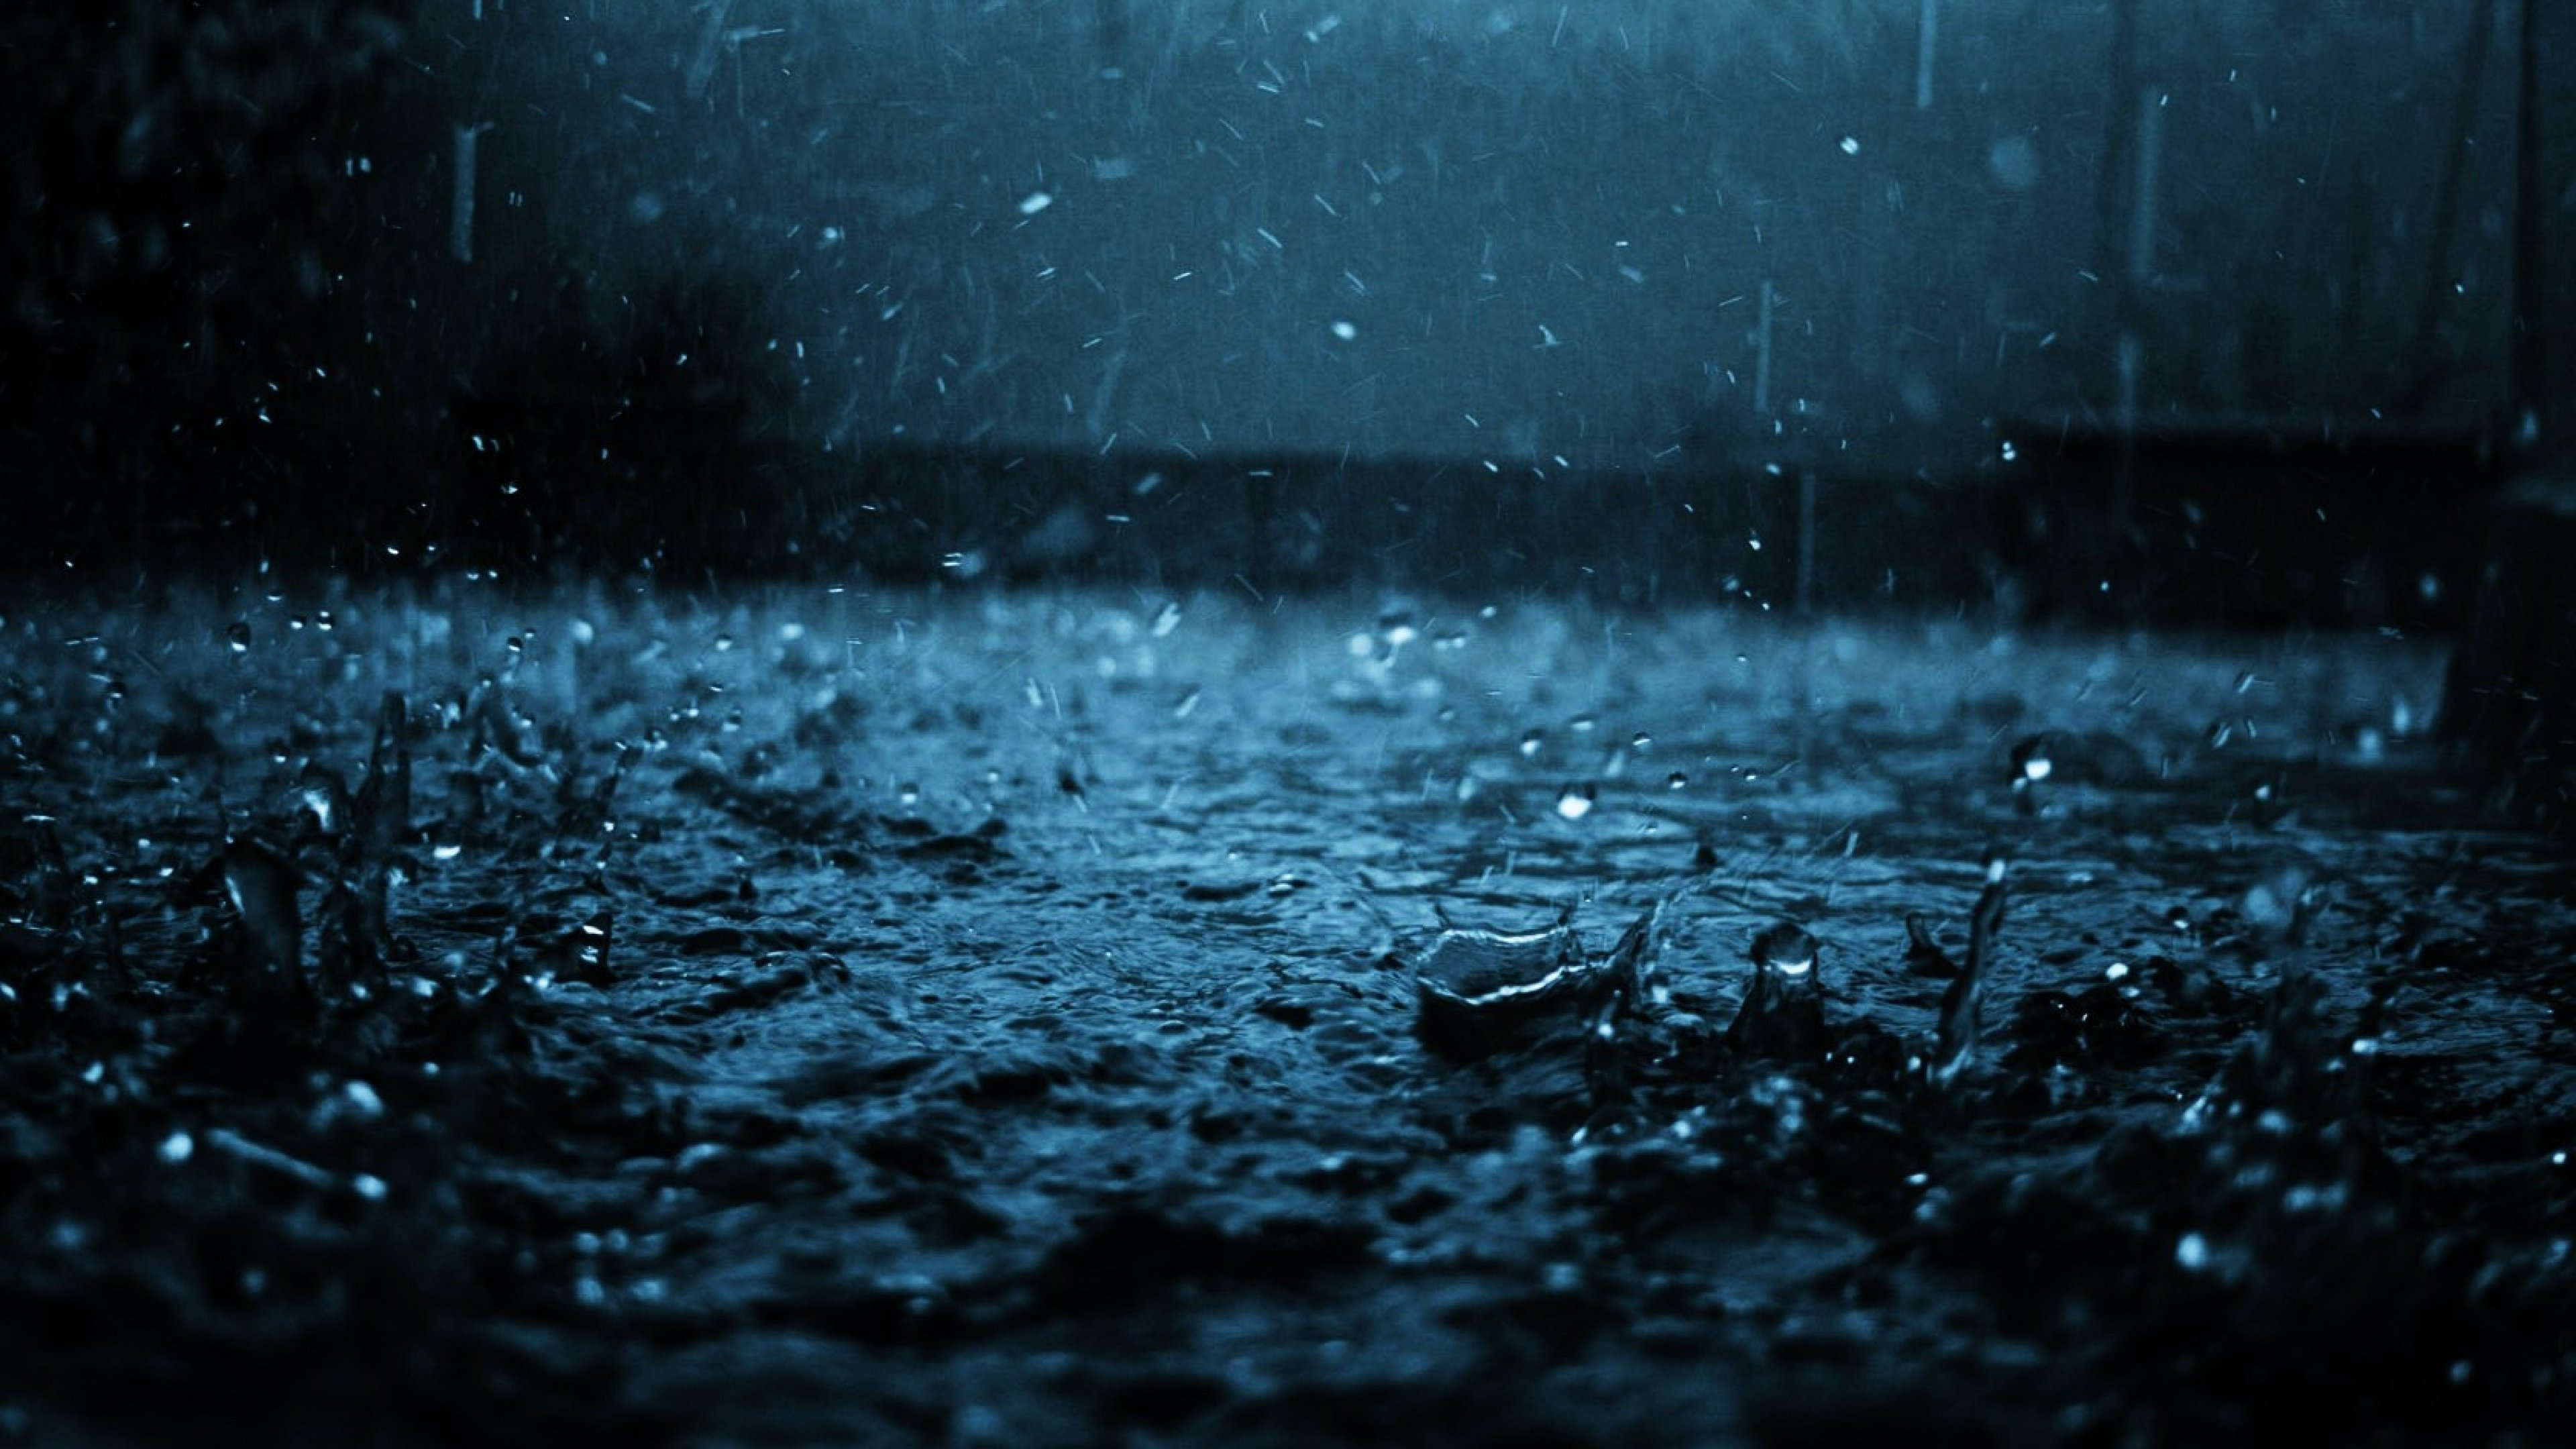 4k Rain Wallpaper Wallpapersafari